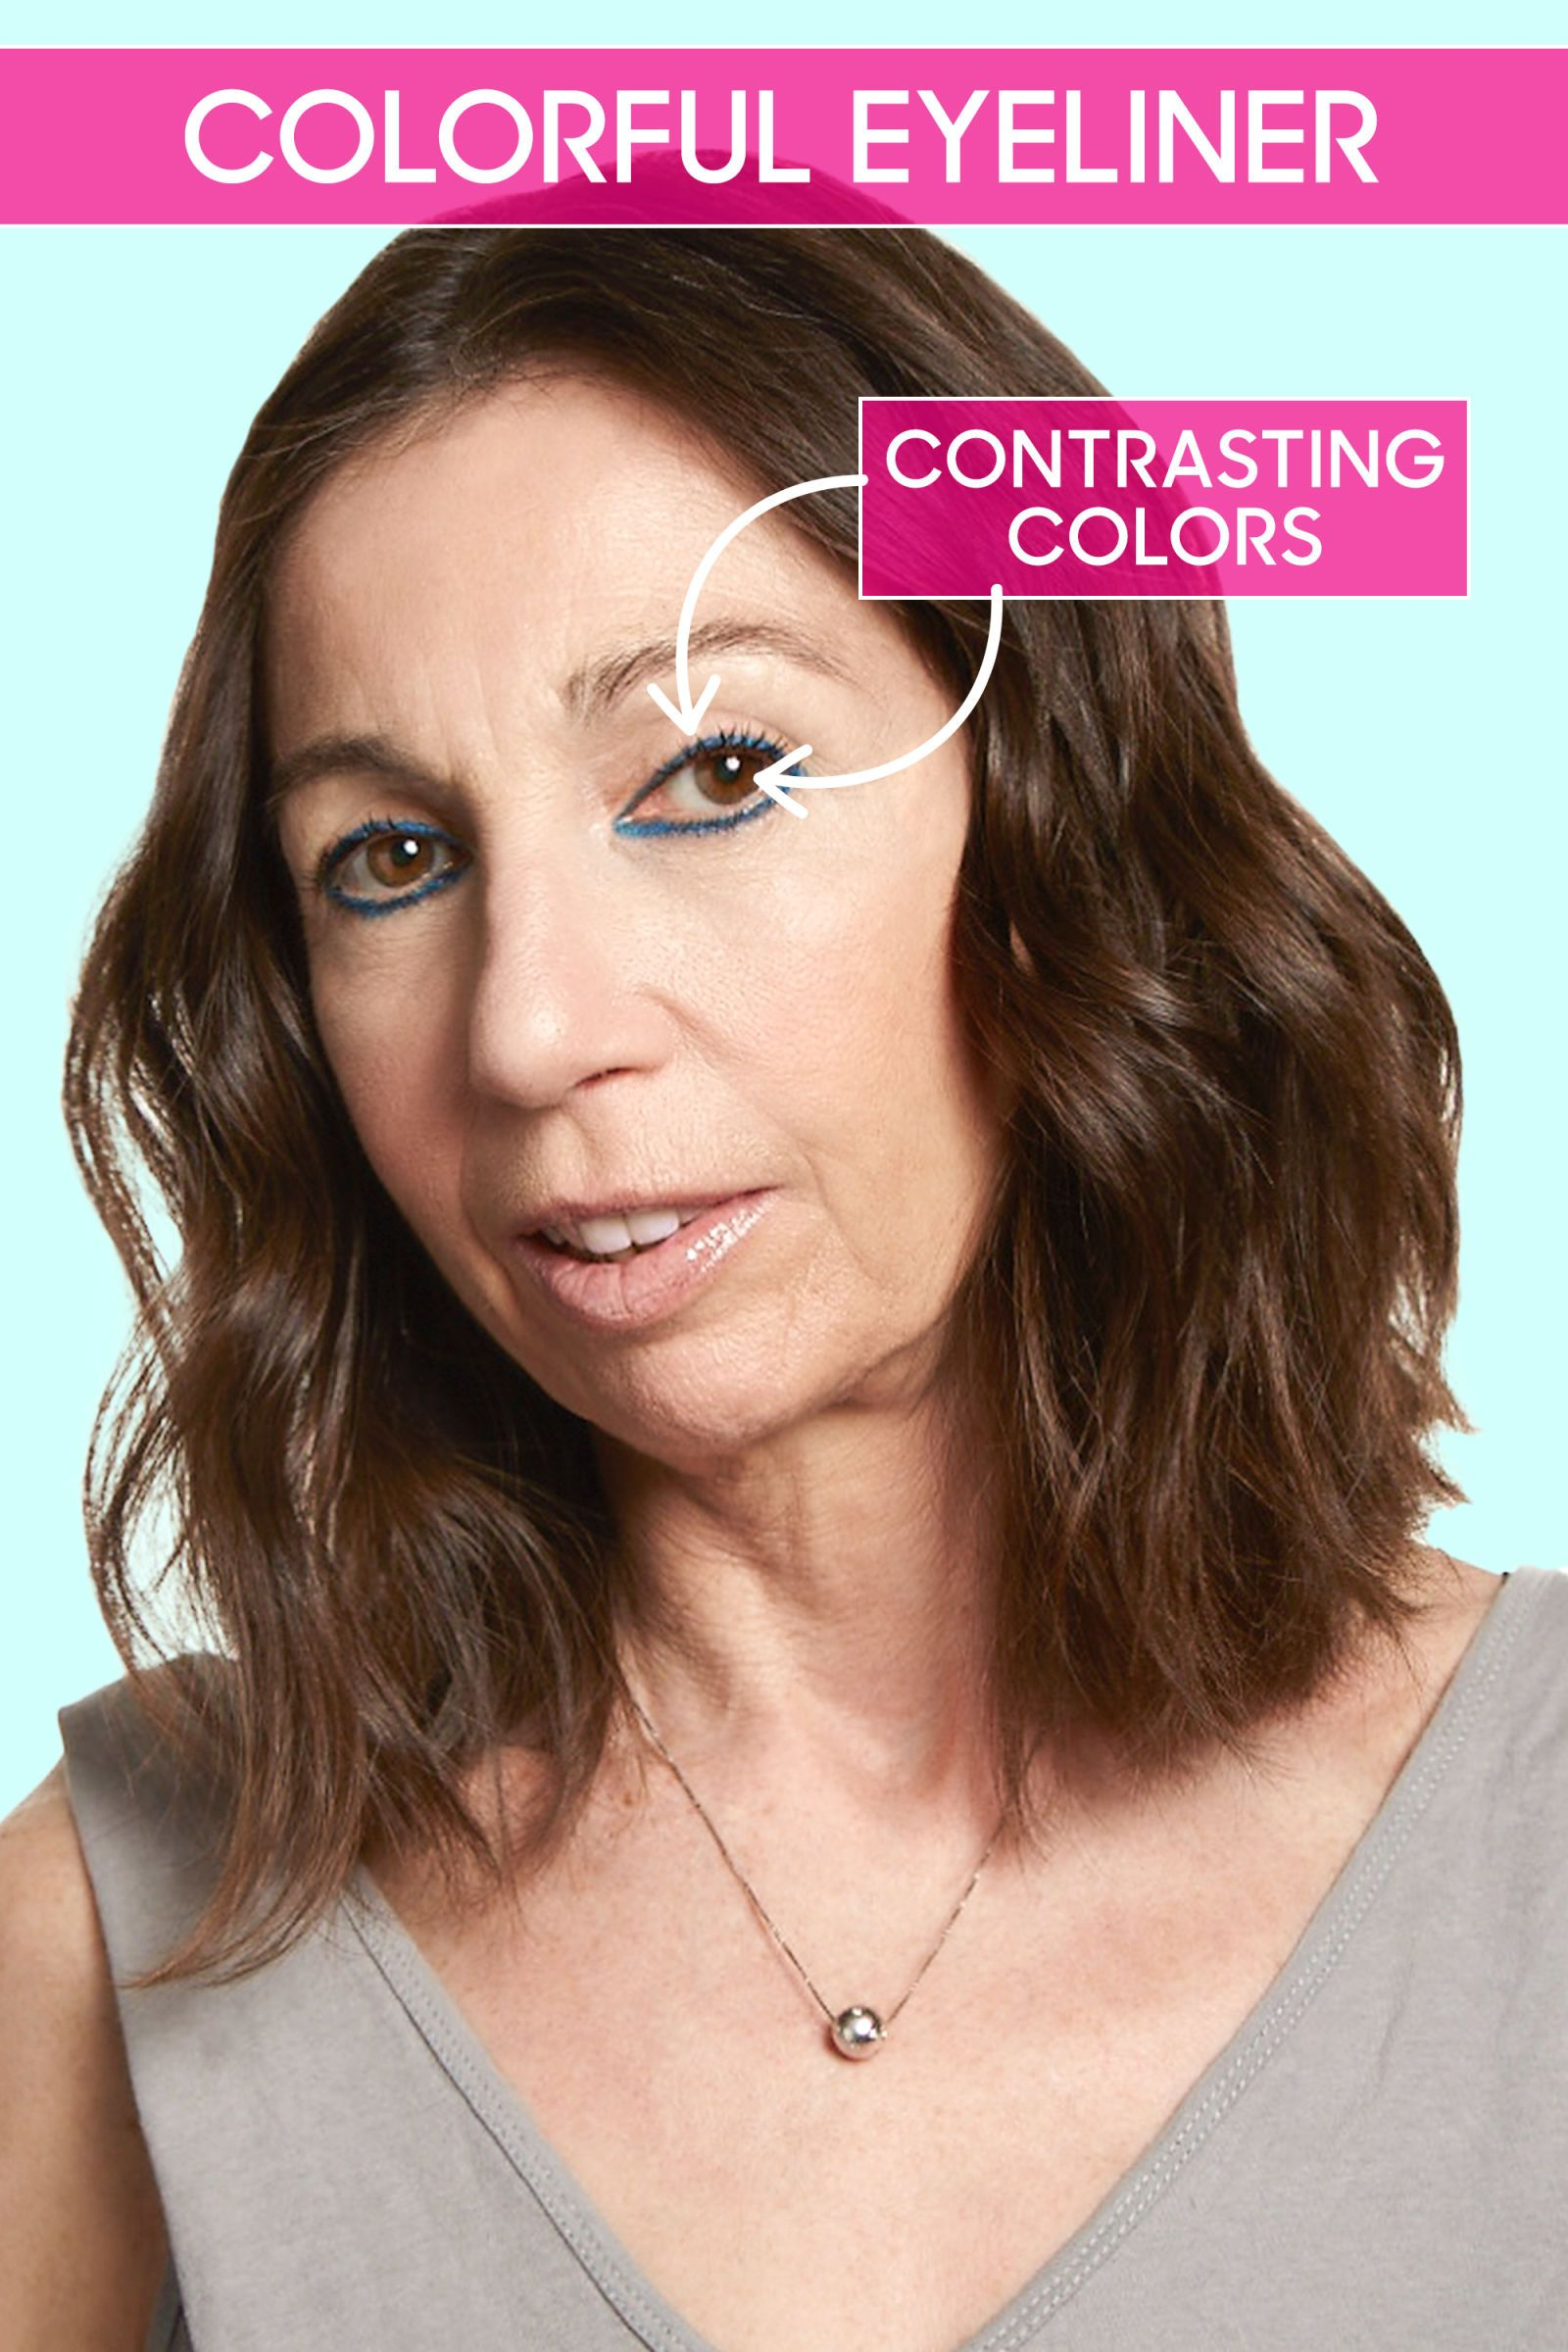 7 Makeup Trends Women Over 40 Shouldn't Be Afraid to Try